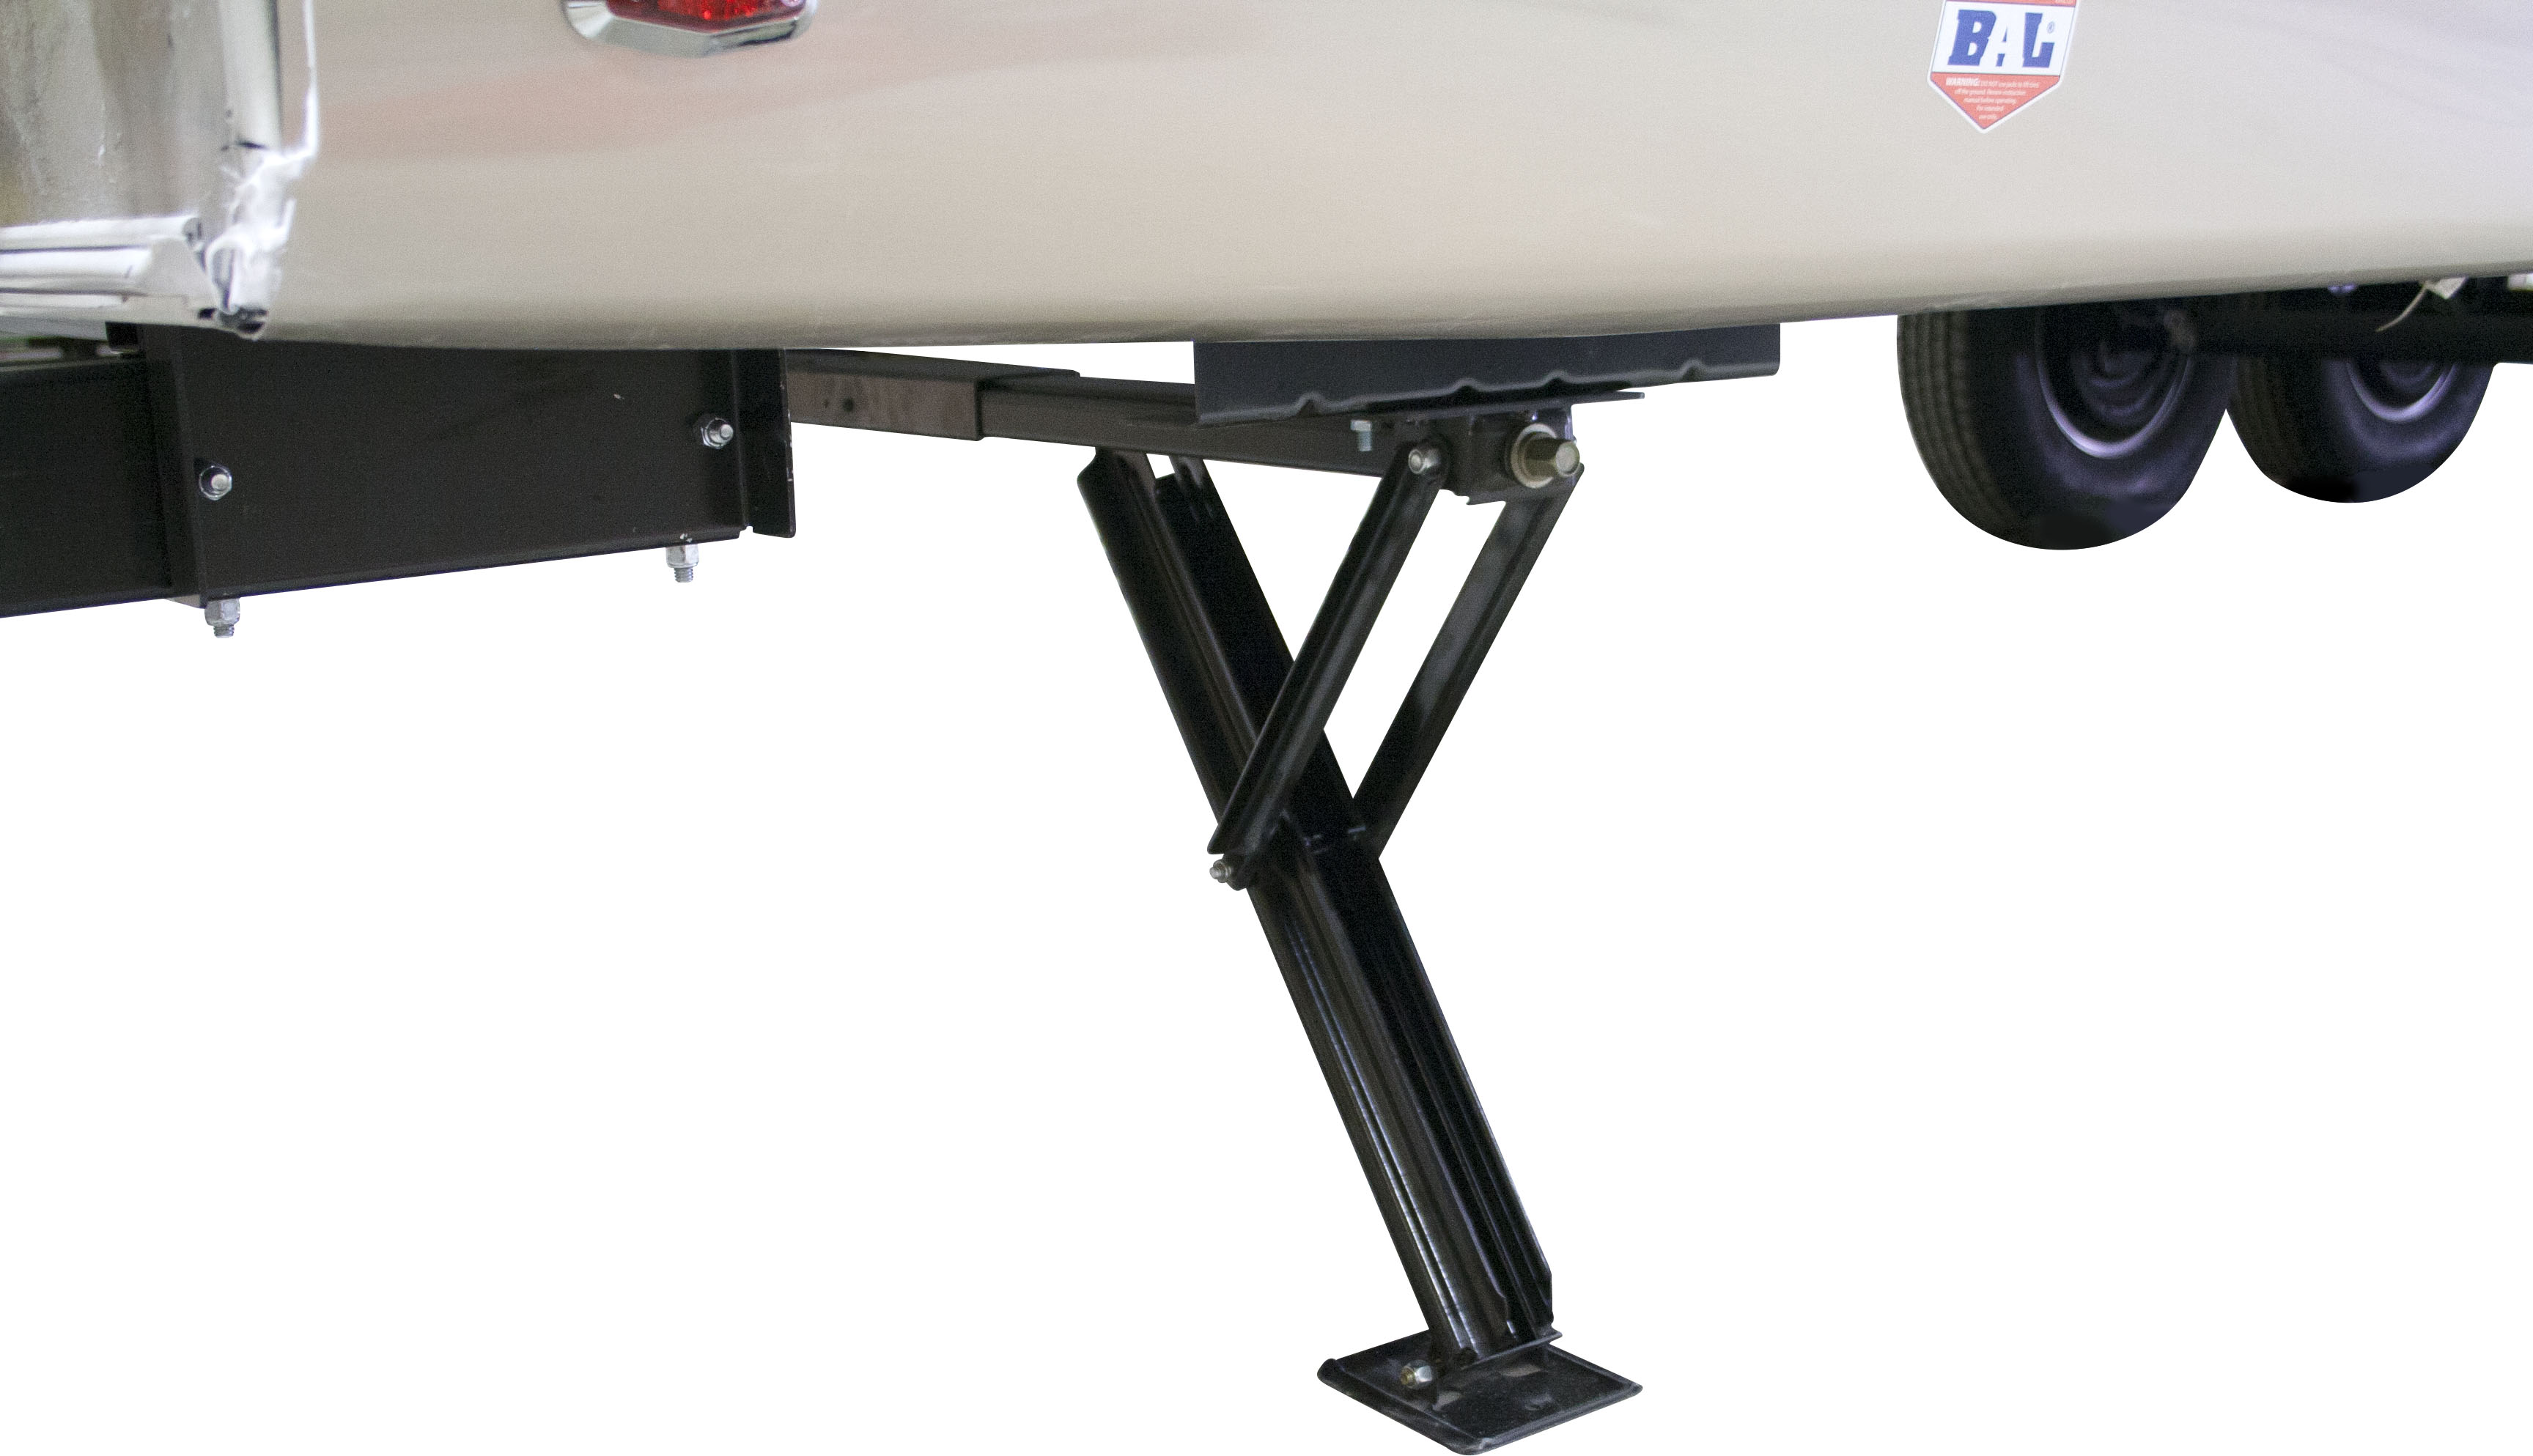 21100005 Bal Rv Products Adnik Trailer Stabilizer Jack Stand Hoppy Towing Quick View